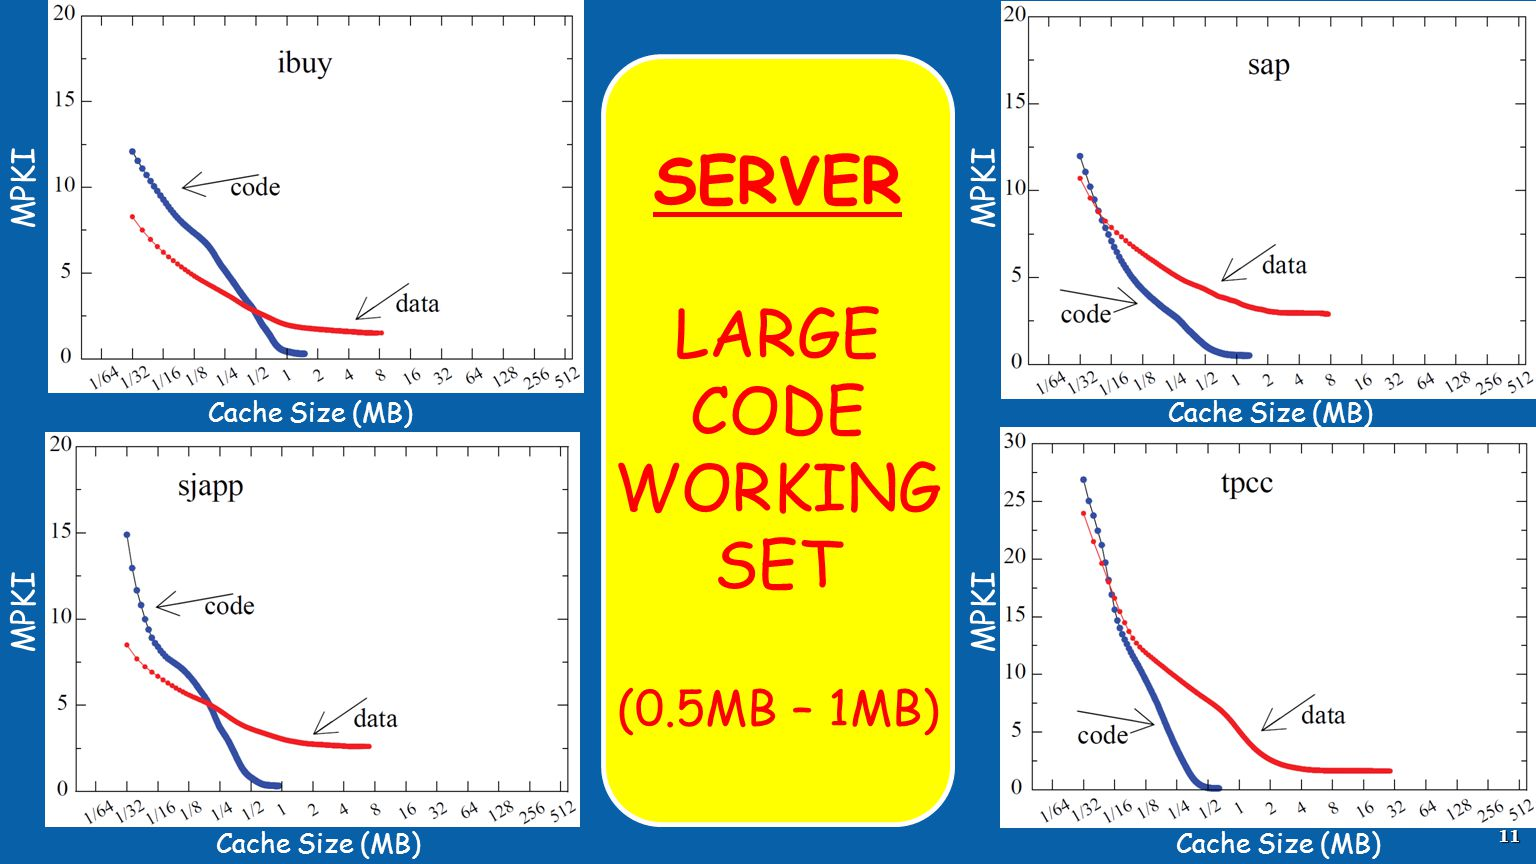 SERVER LARGE CODE WORKING SET (0.5MB – 1MB) MPKI MPKI MPKI MPKI